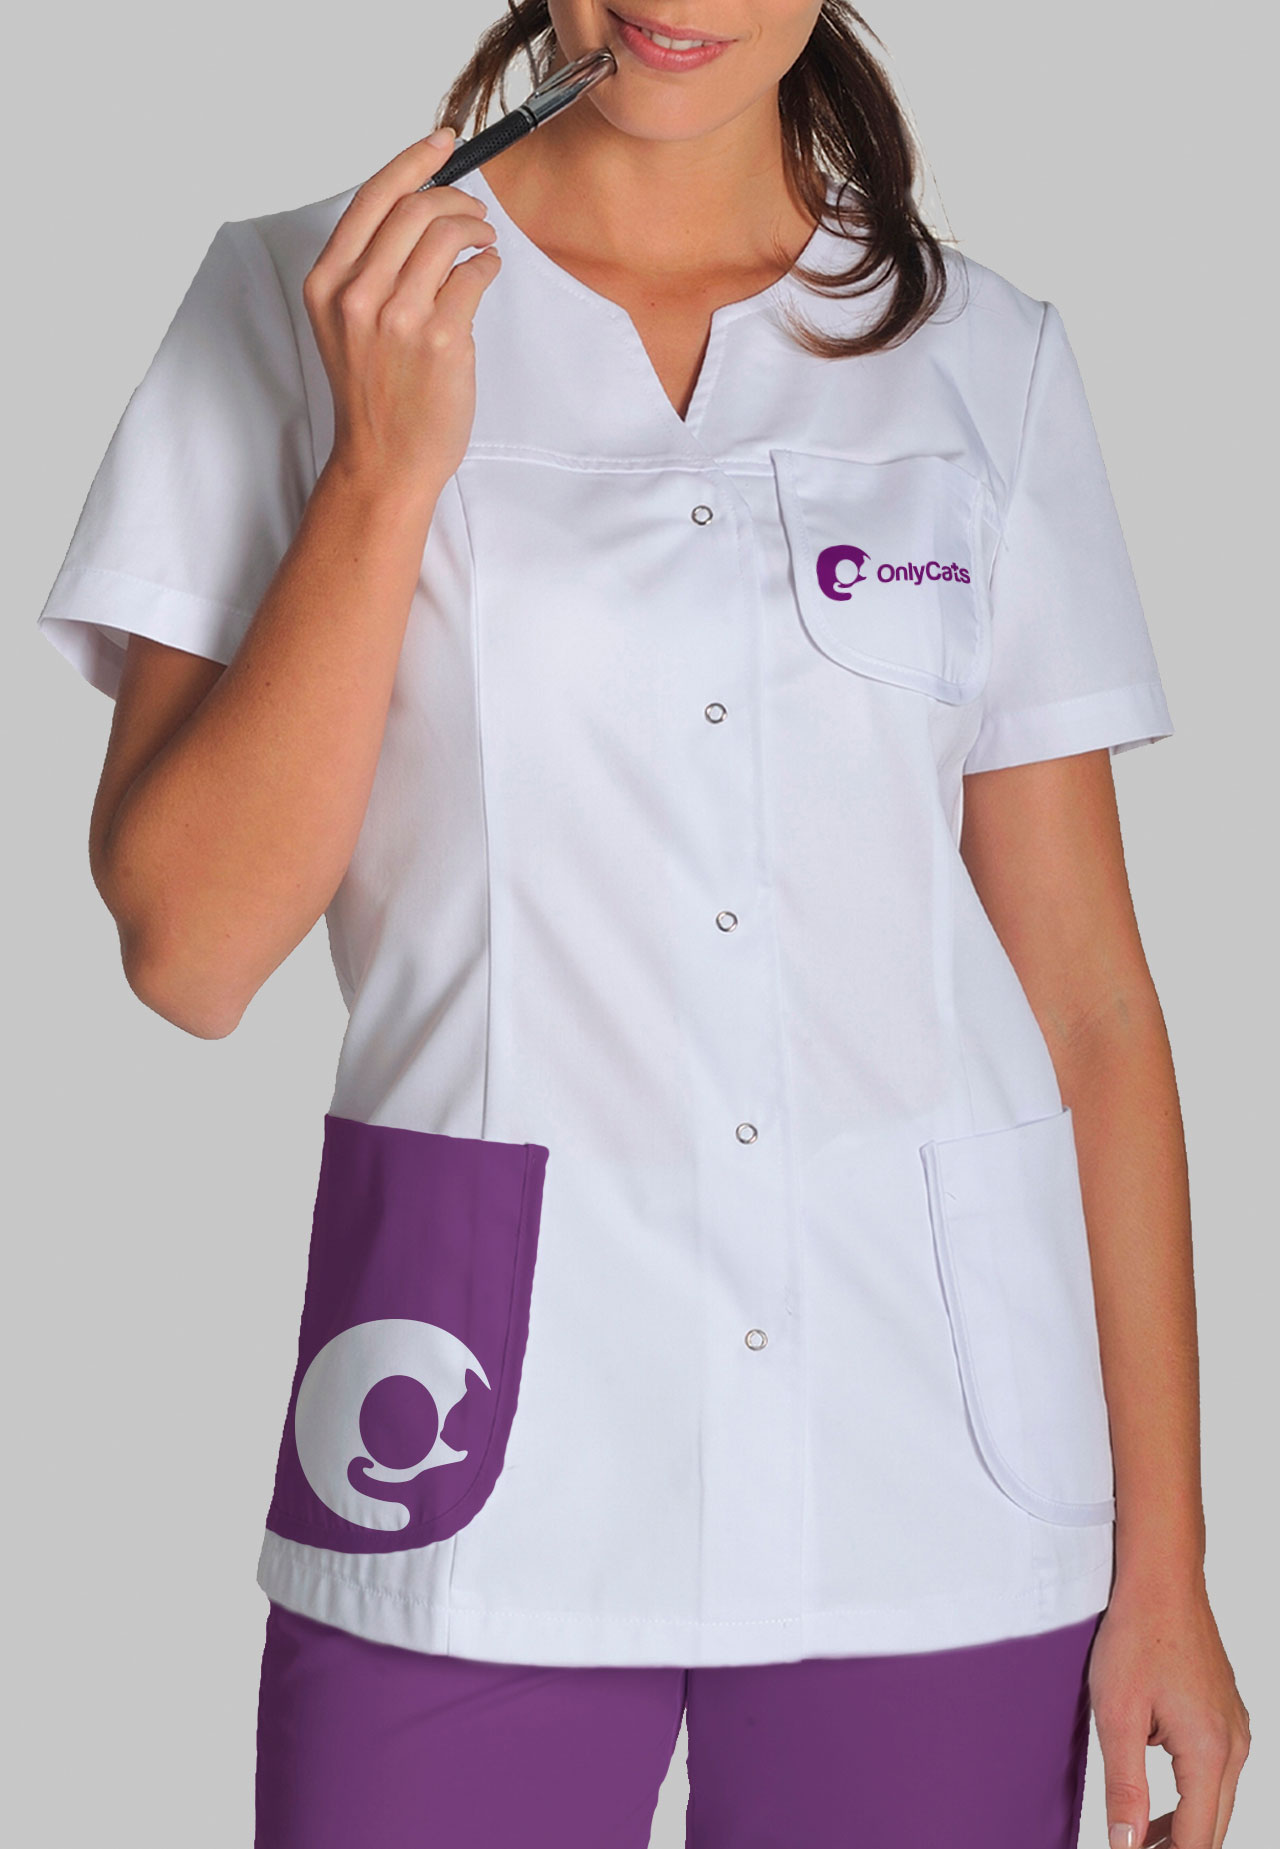 Onlycats uniforme